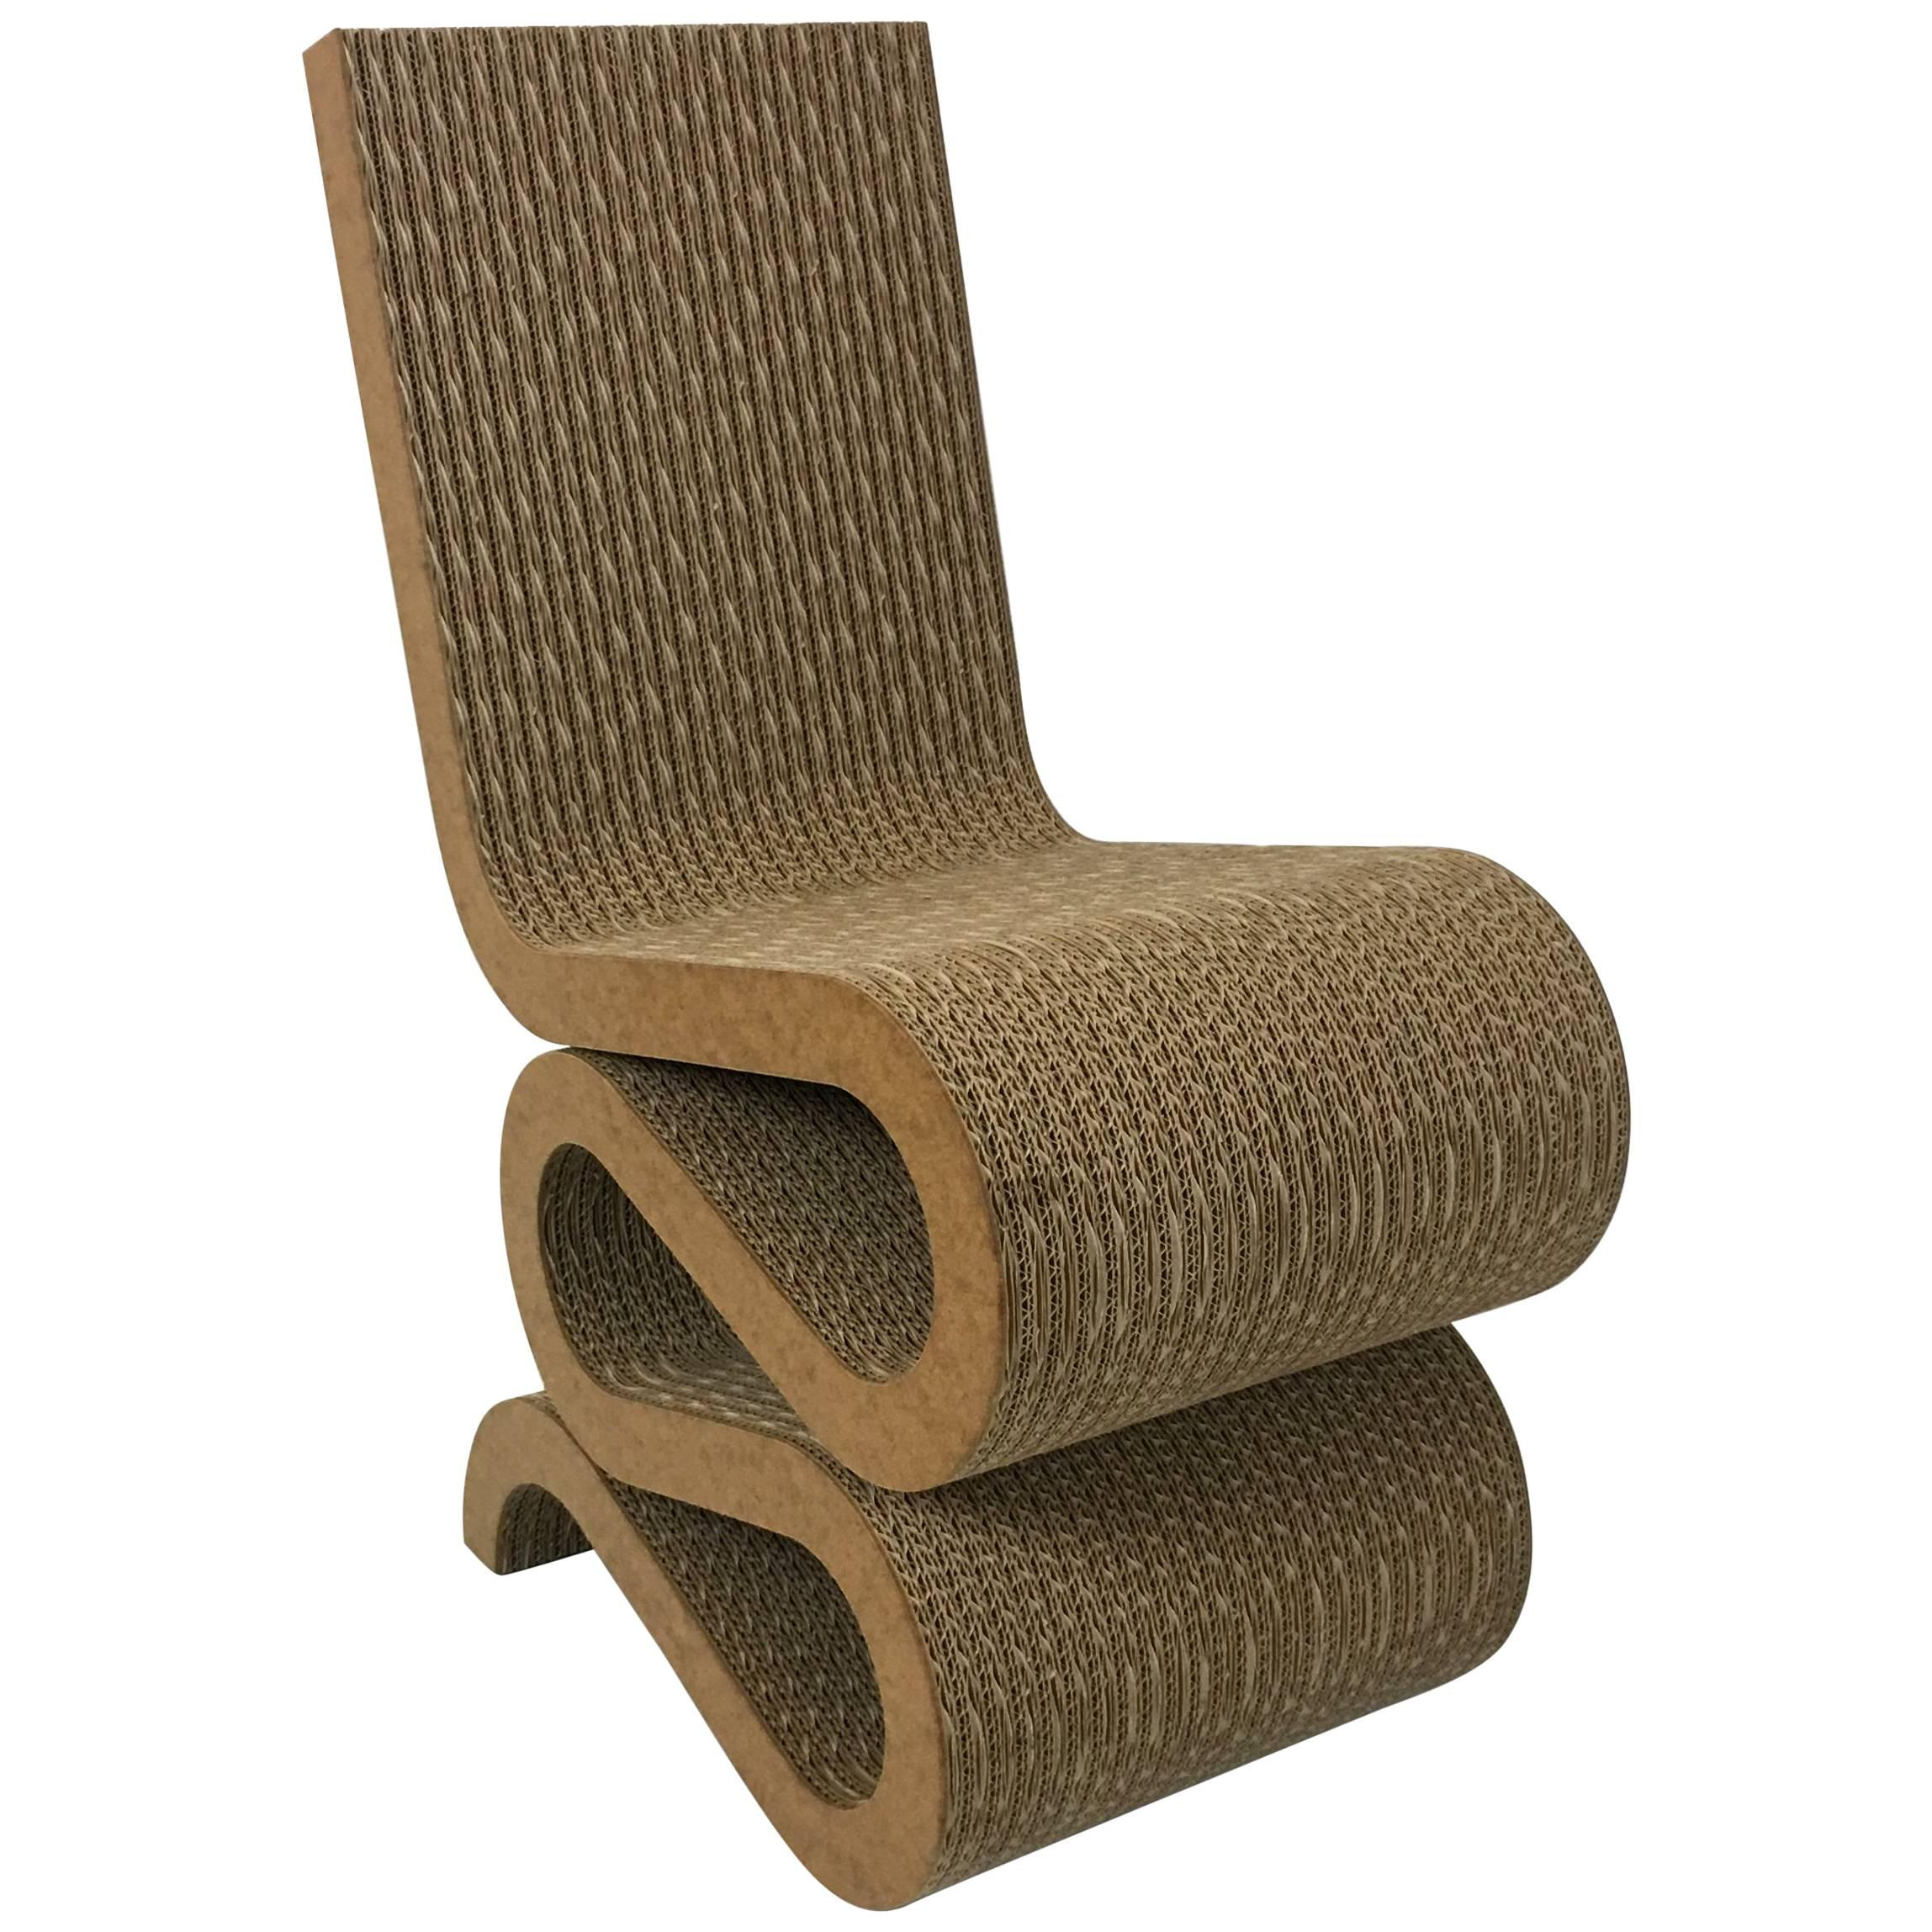 Body Built Chairs Rare Original Frank Gehry Easy Edges Cardboard Contour Chair